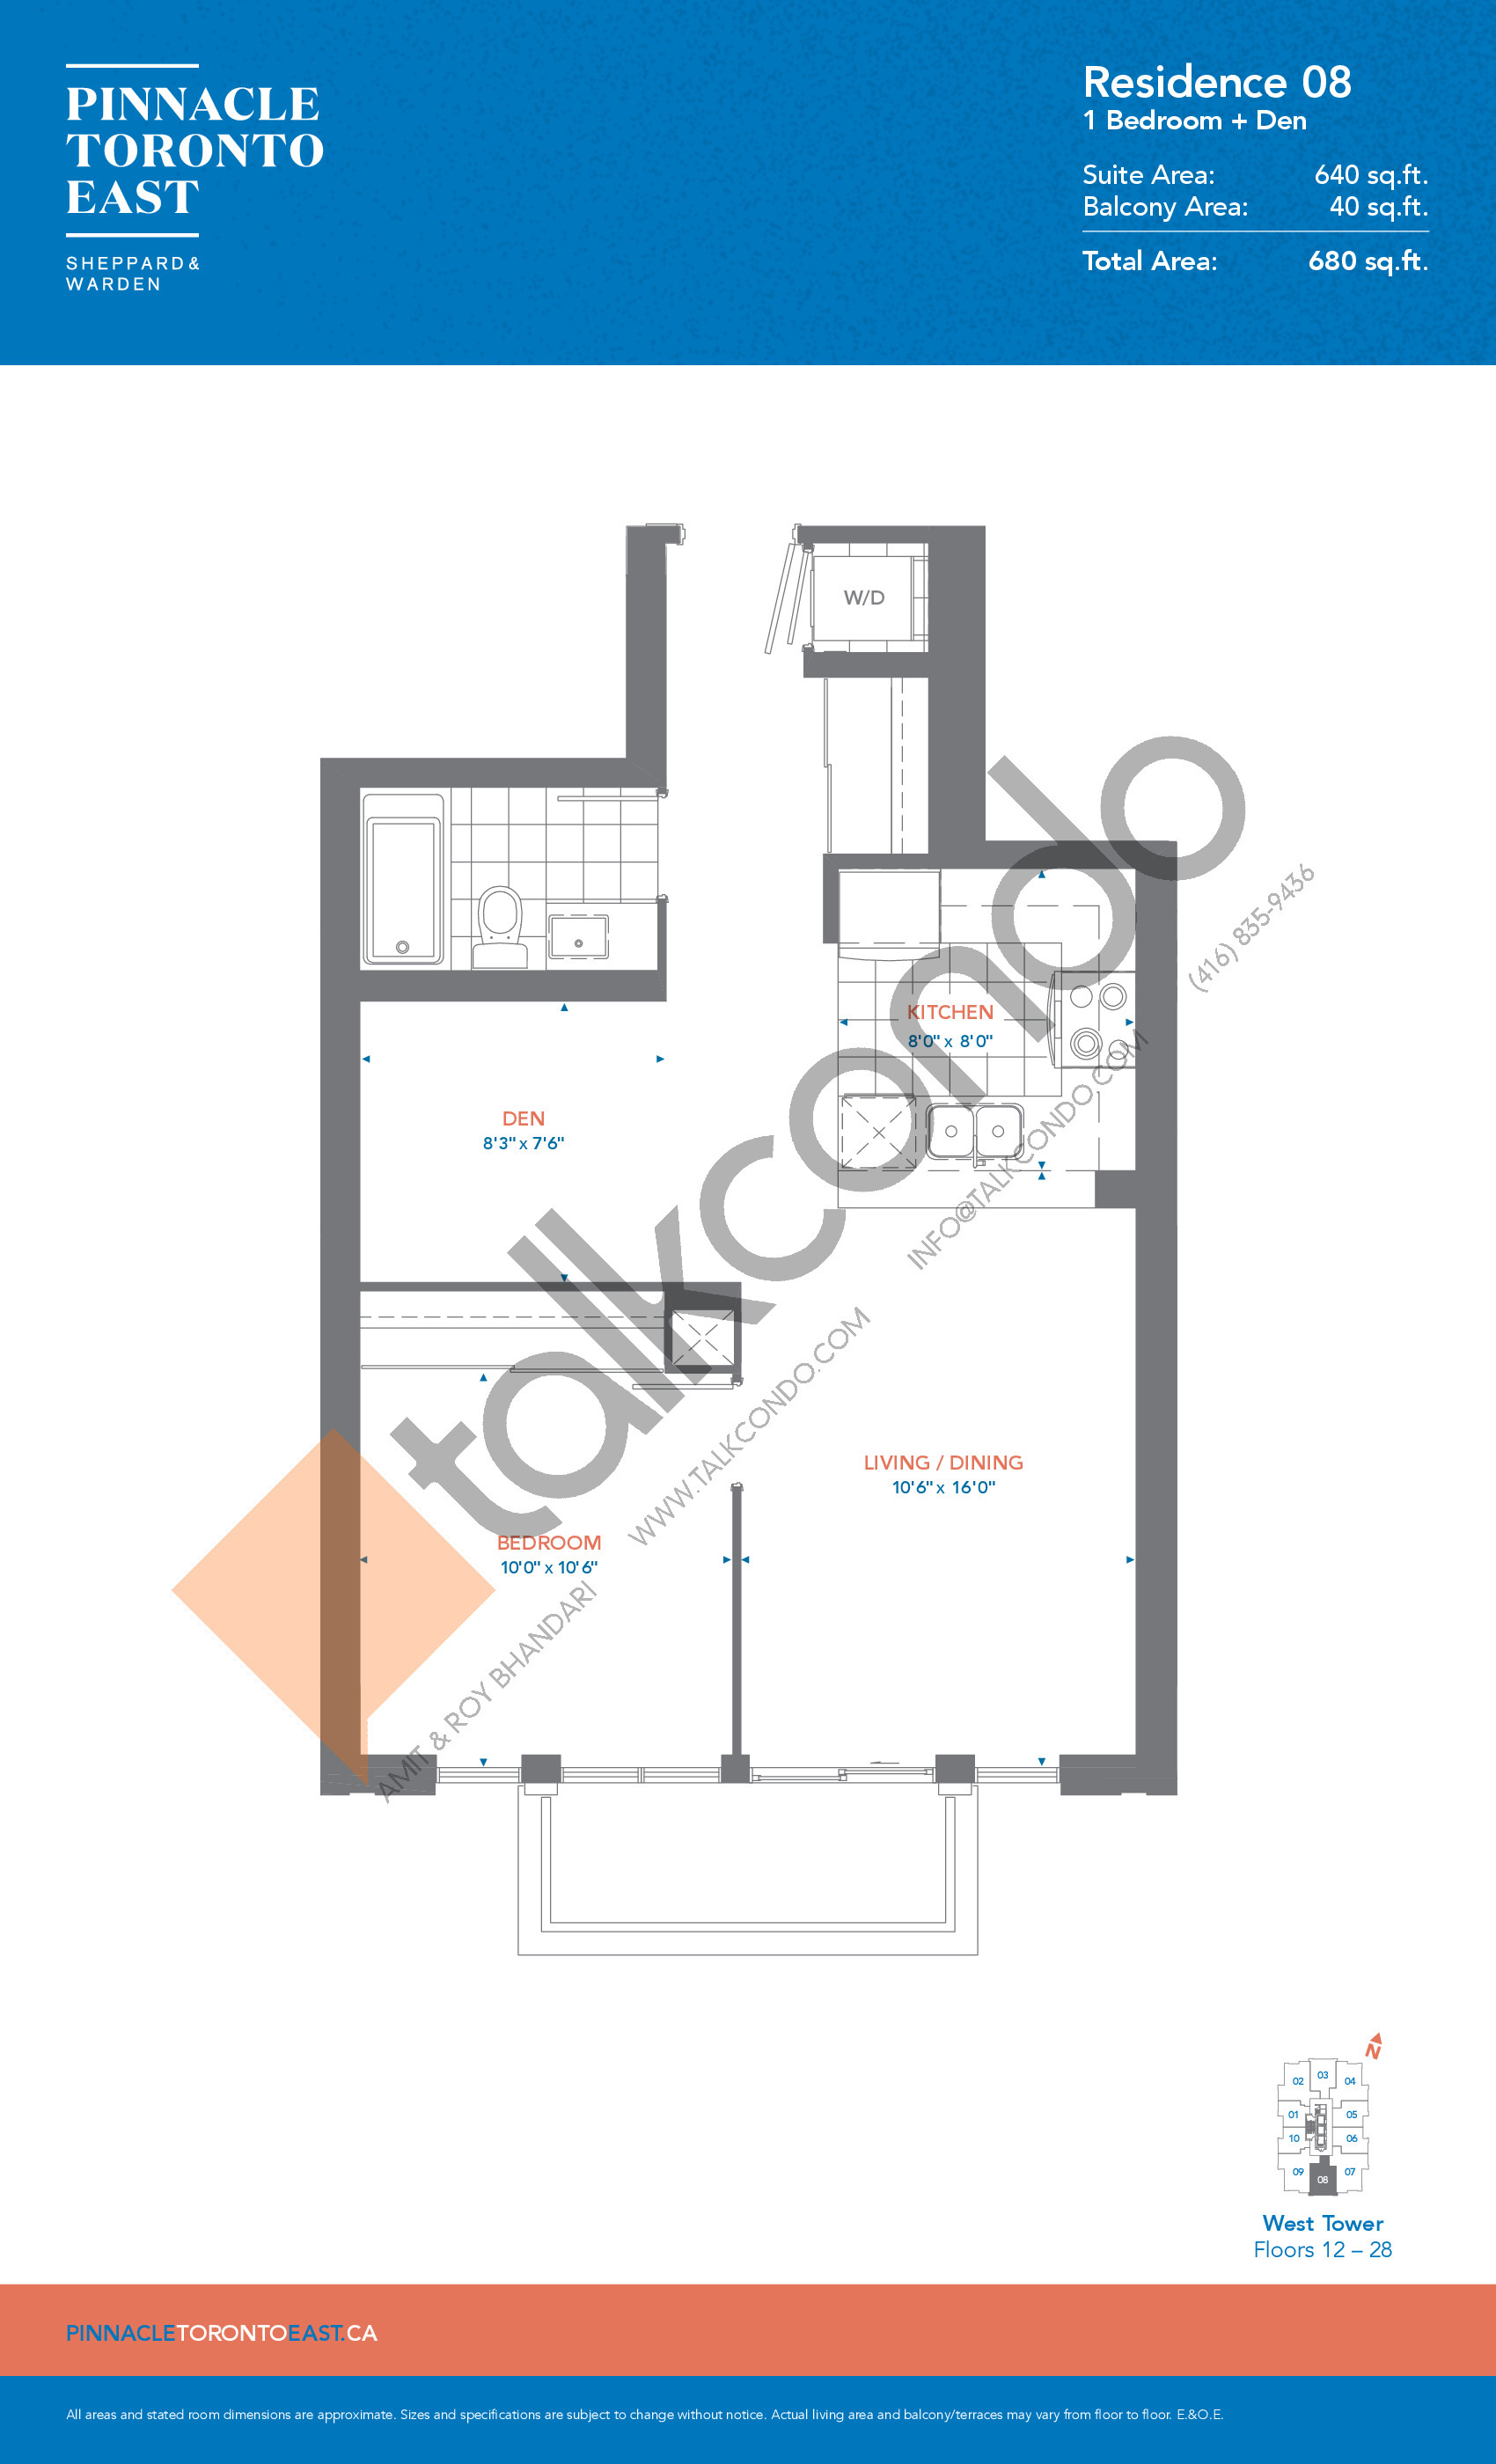 Residence 08 - West Tower Floor Plan at Pinnacle Toronto East Condos - 640 sq.ft